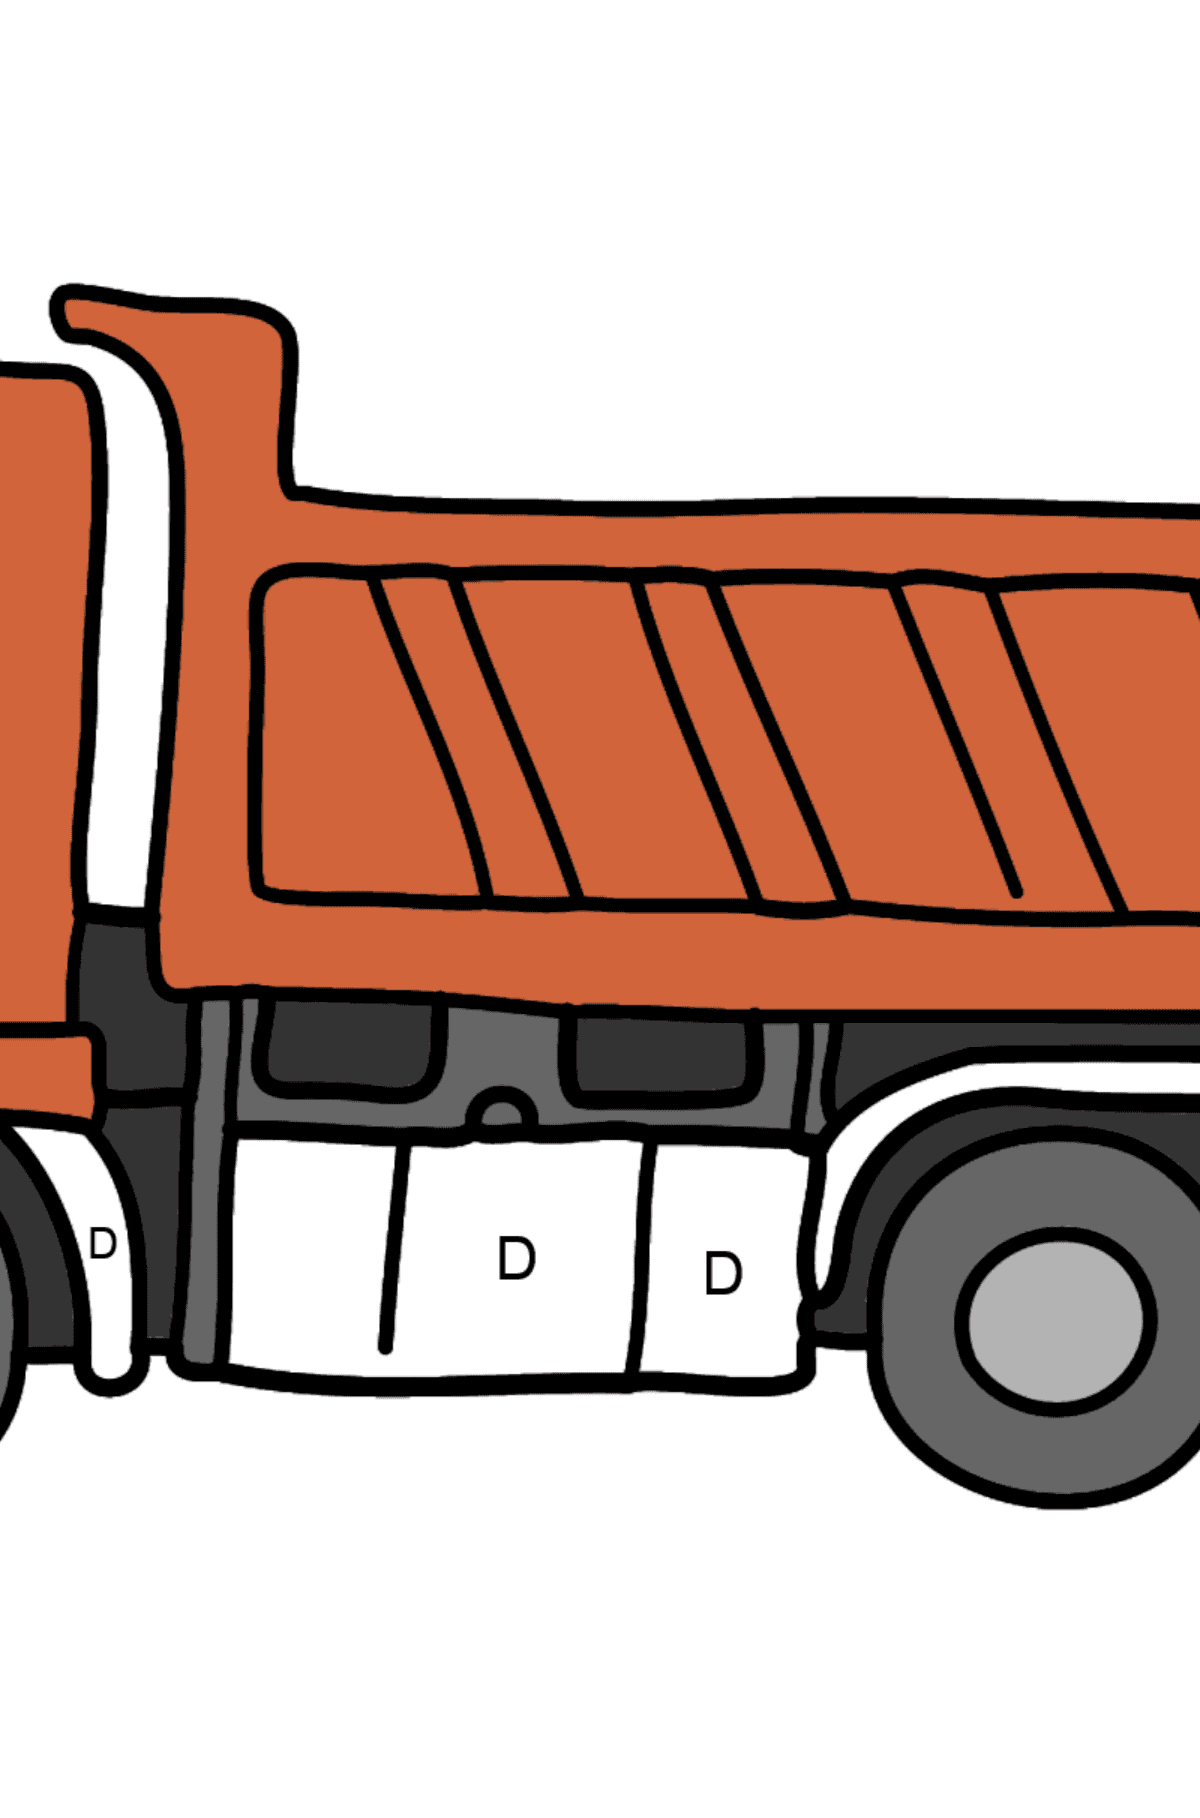 Coloring Page - A Dump Truck - Coloring by Letters for Kids